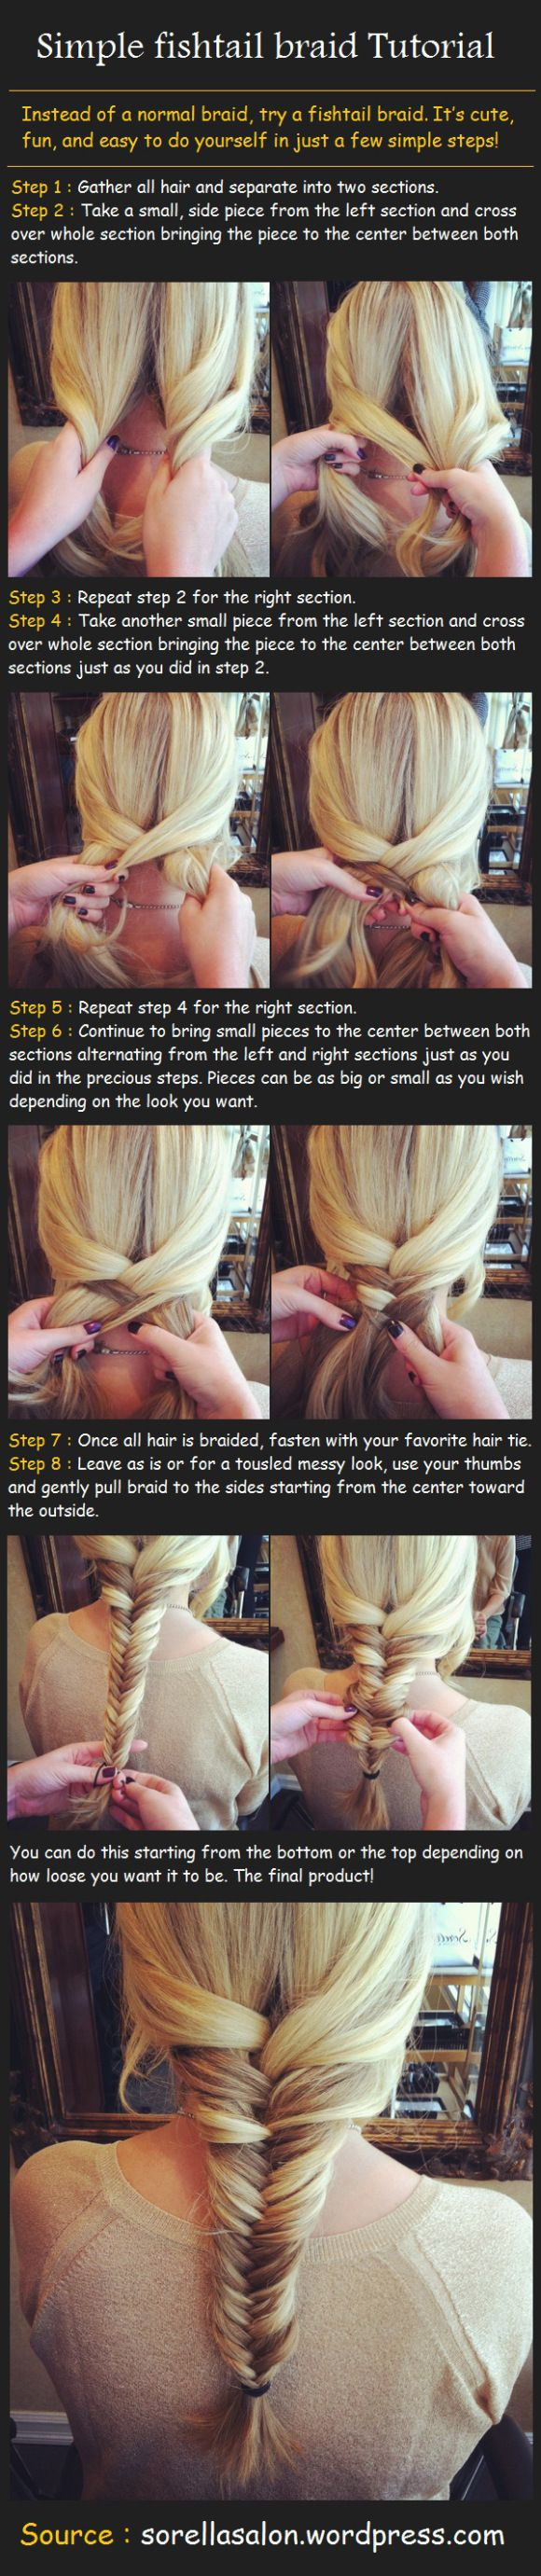 Simple Fishtail Braid Tutorial, I can do this on other people but not myself! still need to learn!